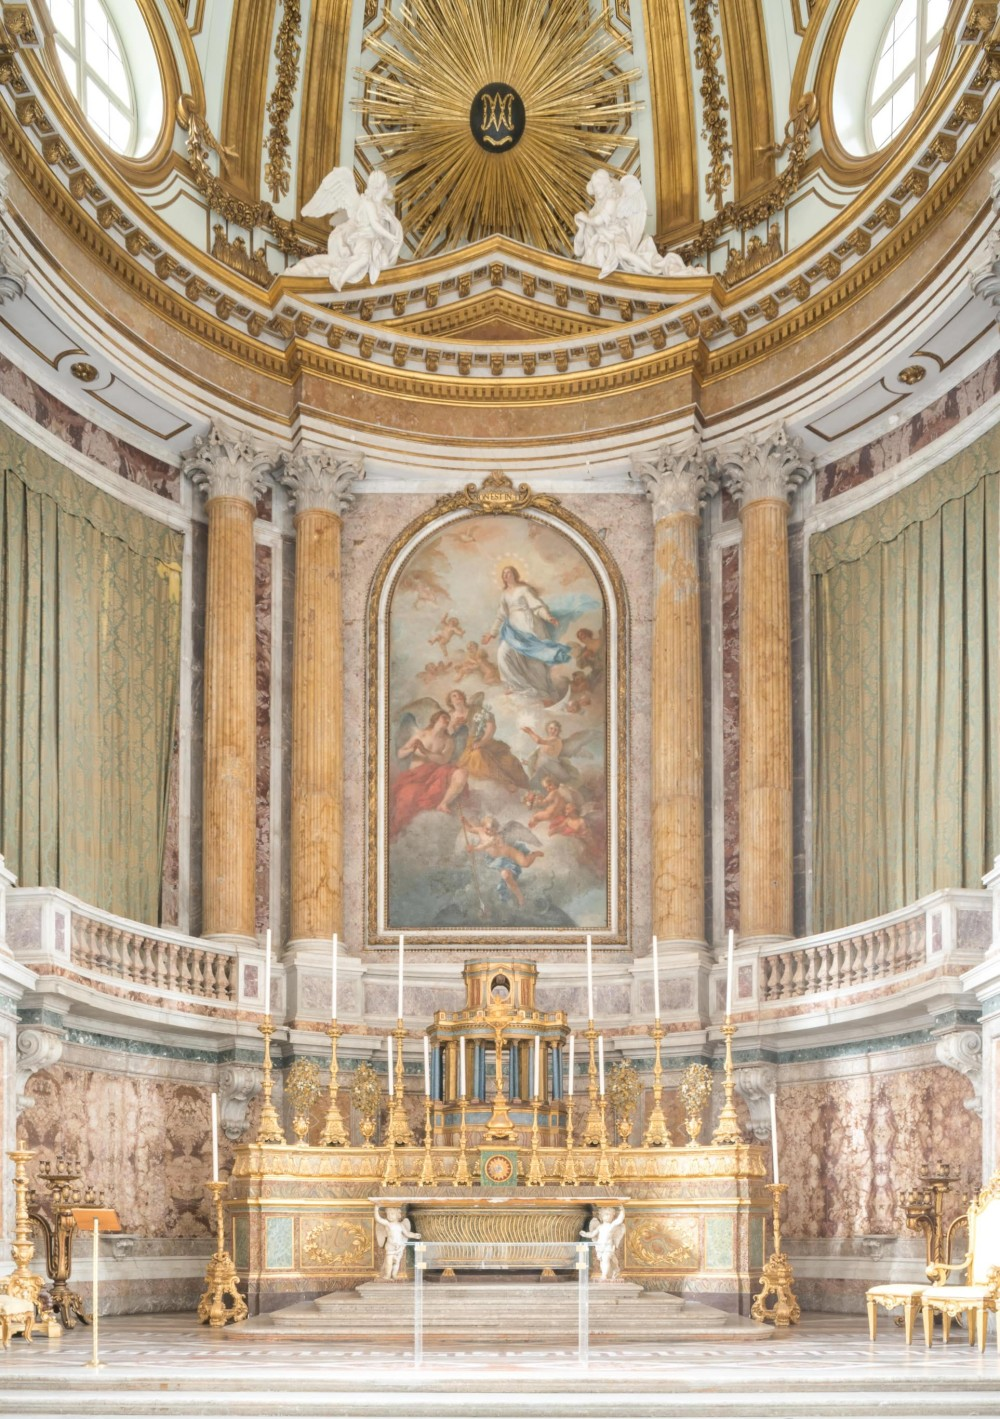 The Palatina Chapel, designed by Vanvitelli, decorations and all, exemplifies the the influence of Versailles. – © Mariano De Angelis